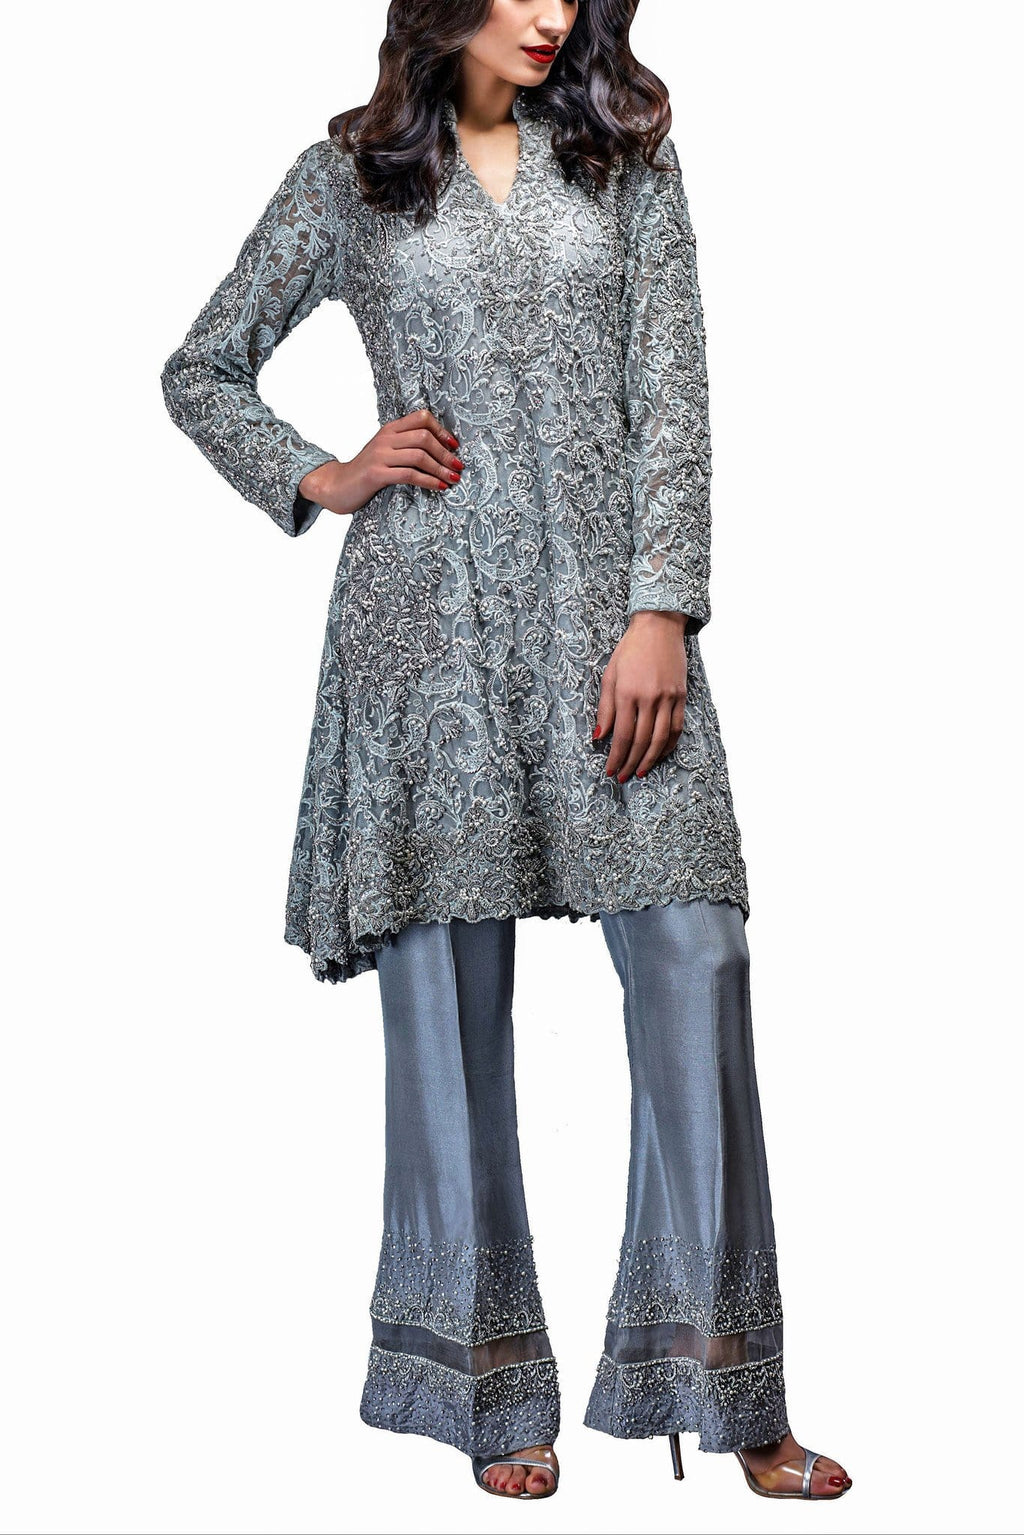 HSY - Ice Blue Peplum Shirt With Bell Bottom Silk Trousers